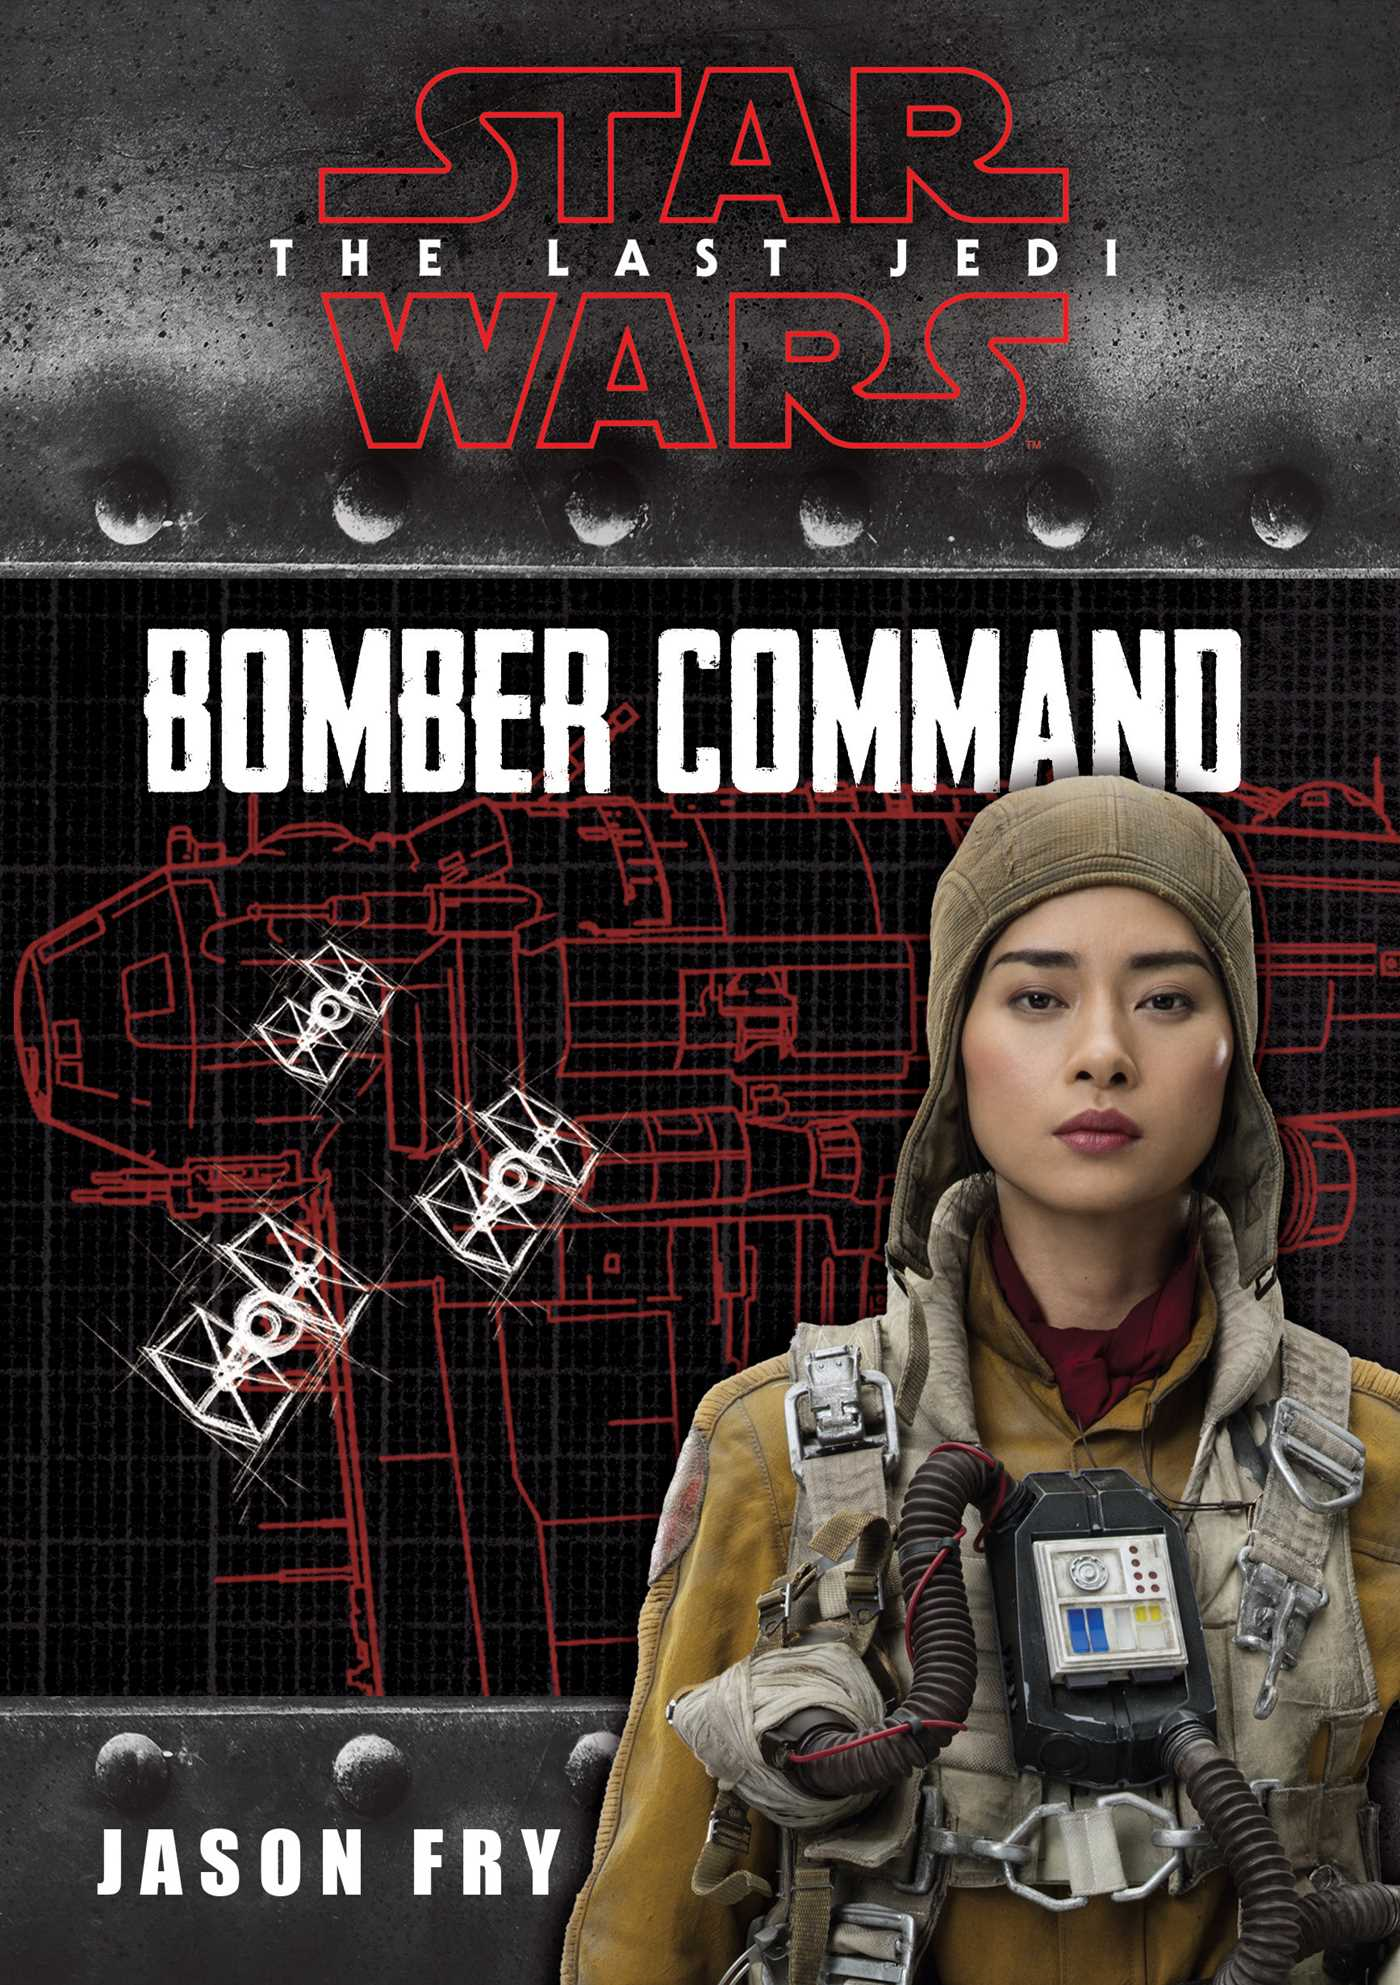 Star wars viii the last jedi bomber command 9780794440848 hr